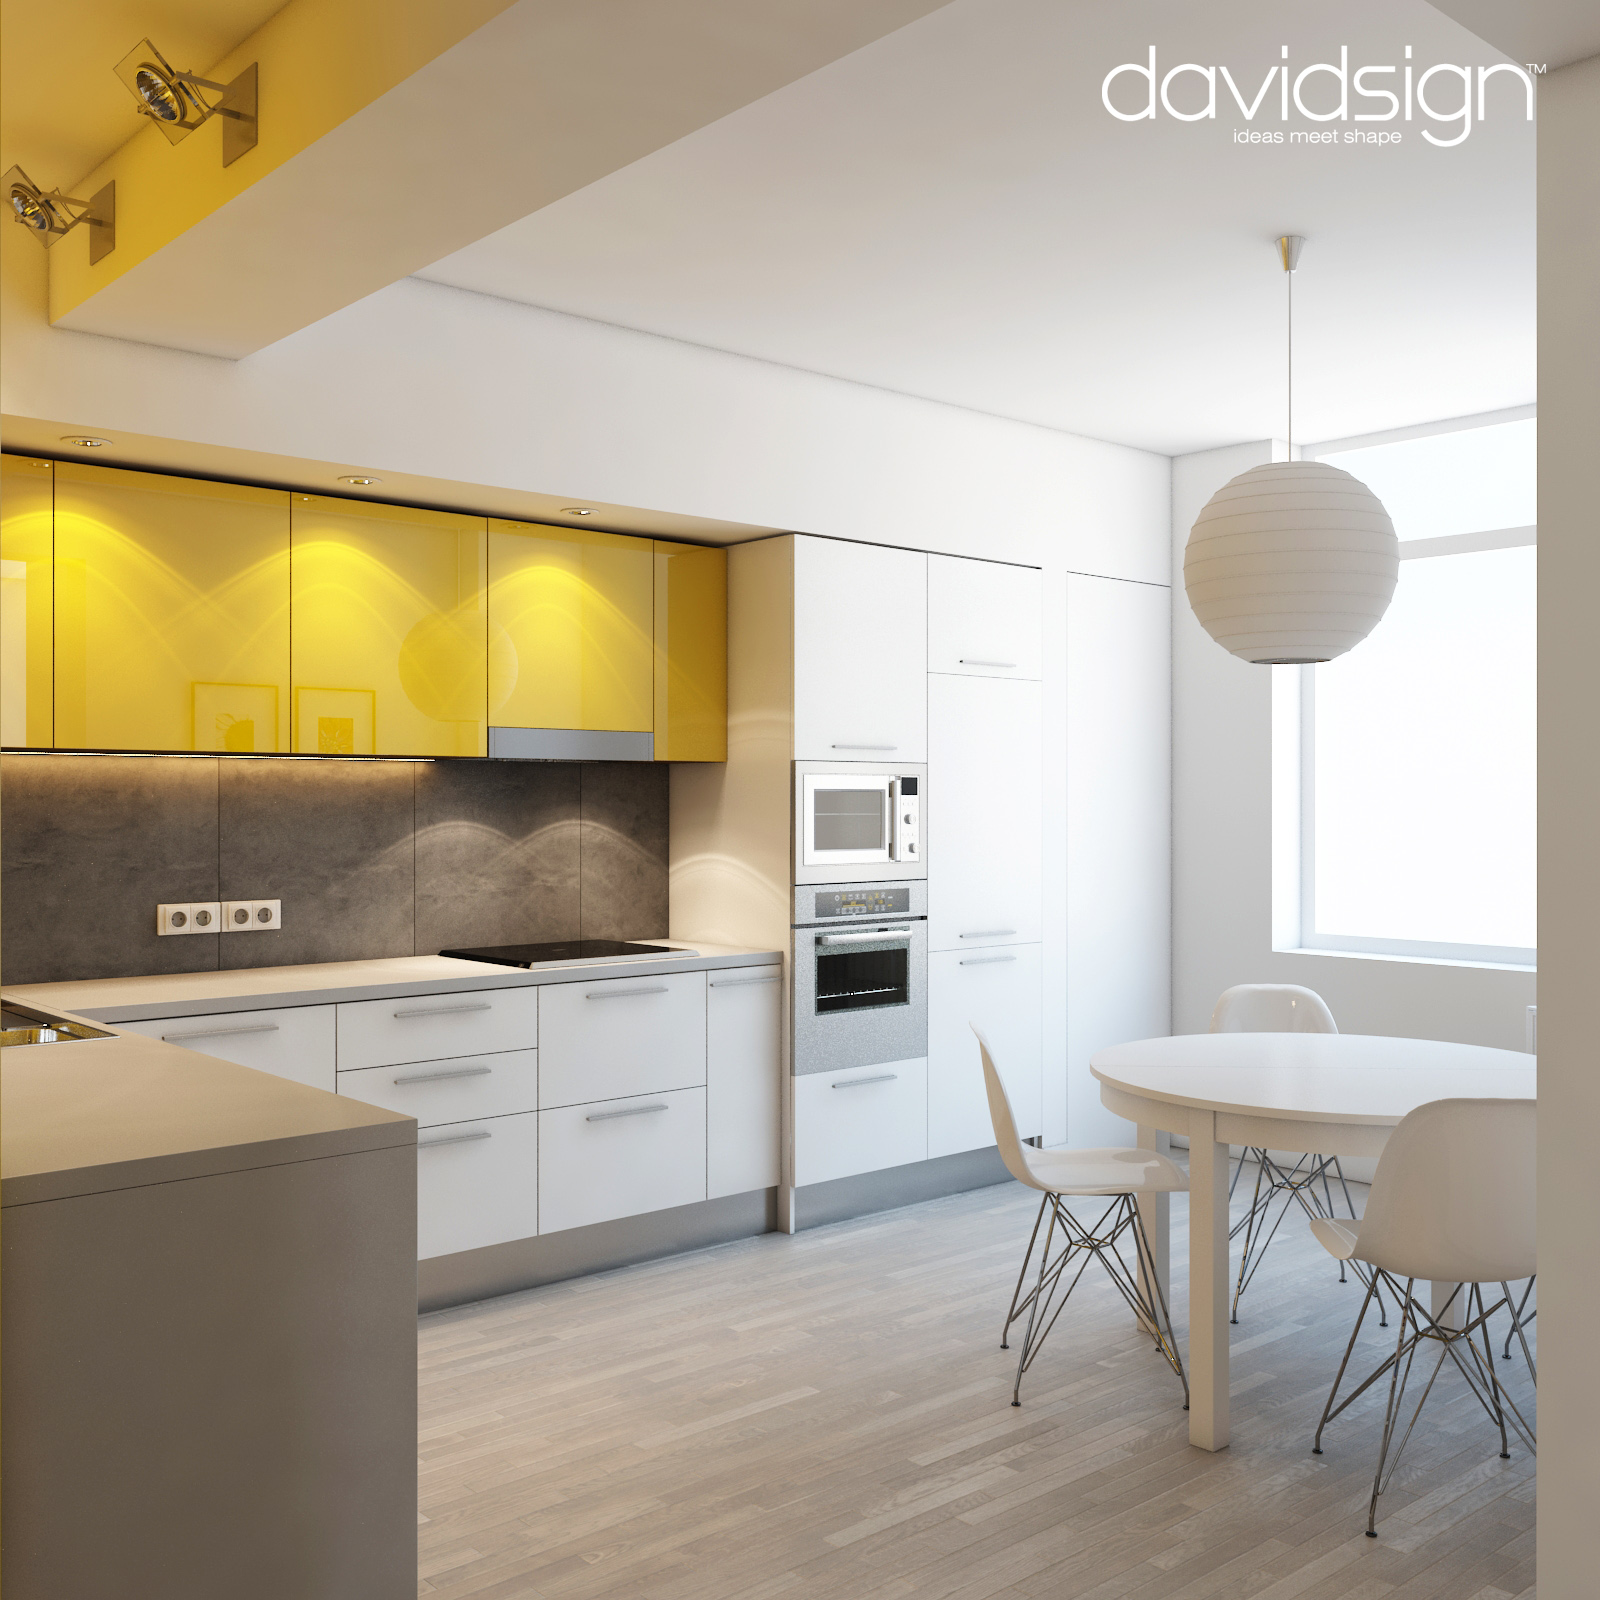 Design interior pentru apartament n chi in u davidsign blog for An interior design